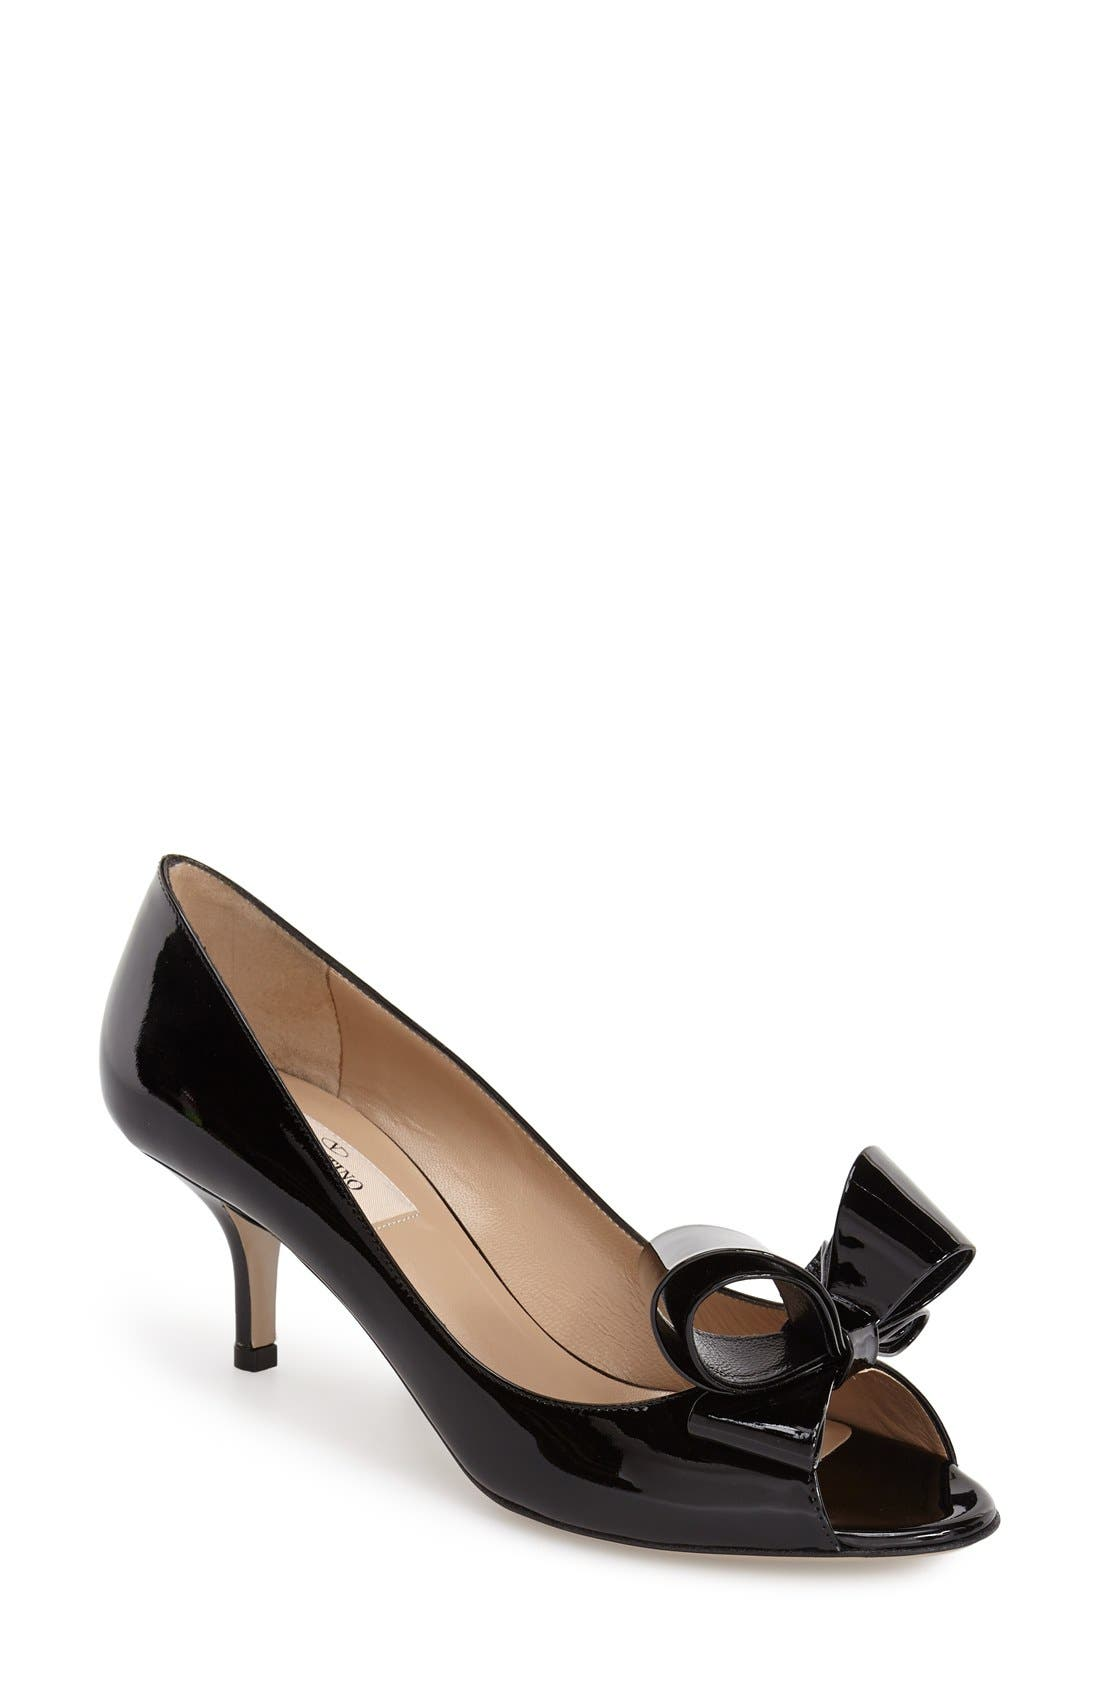 Main Image - Valentino Couture Bow Pump (Women)